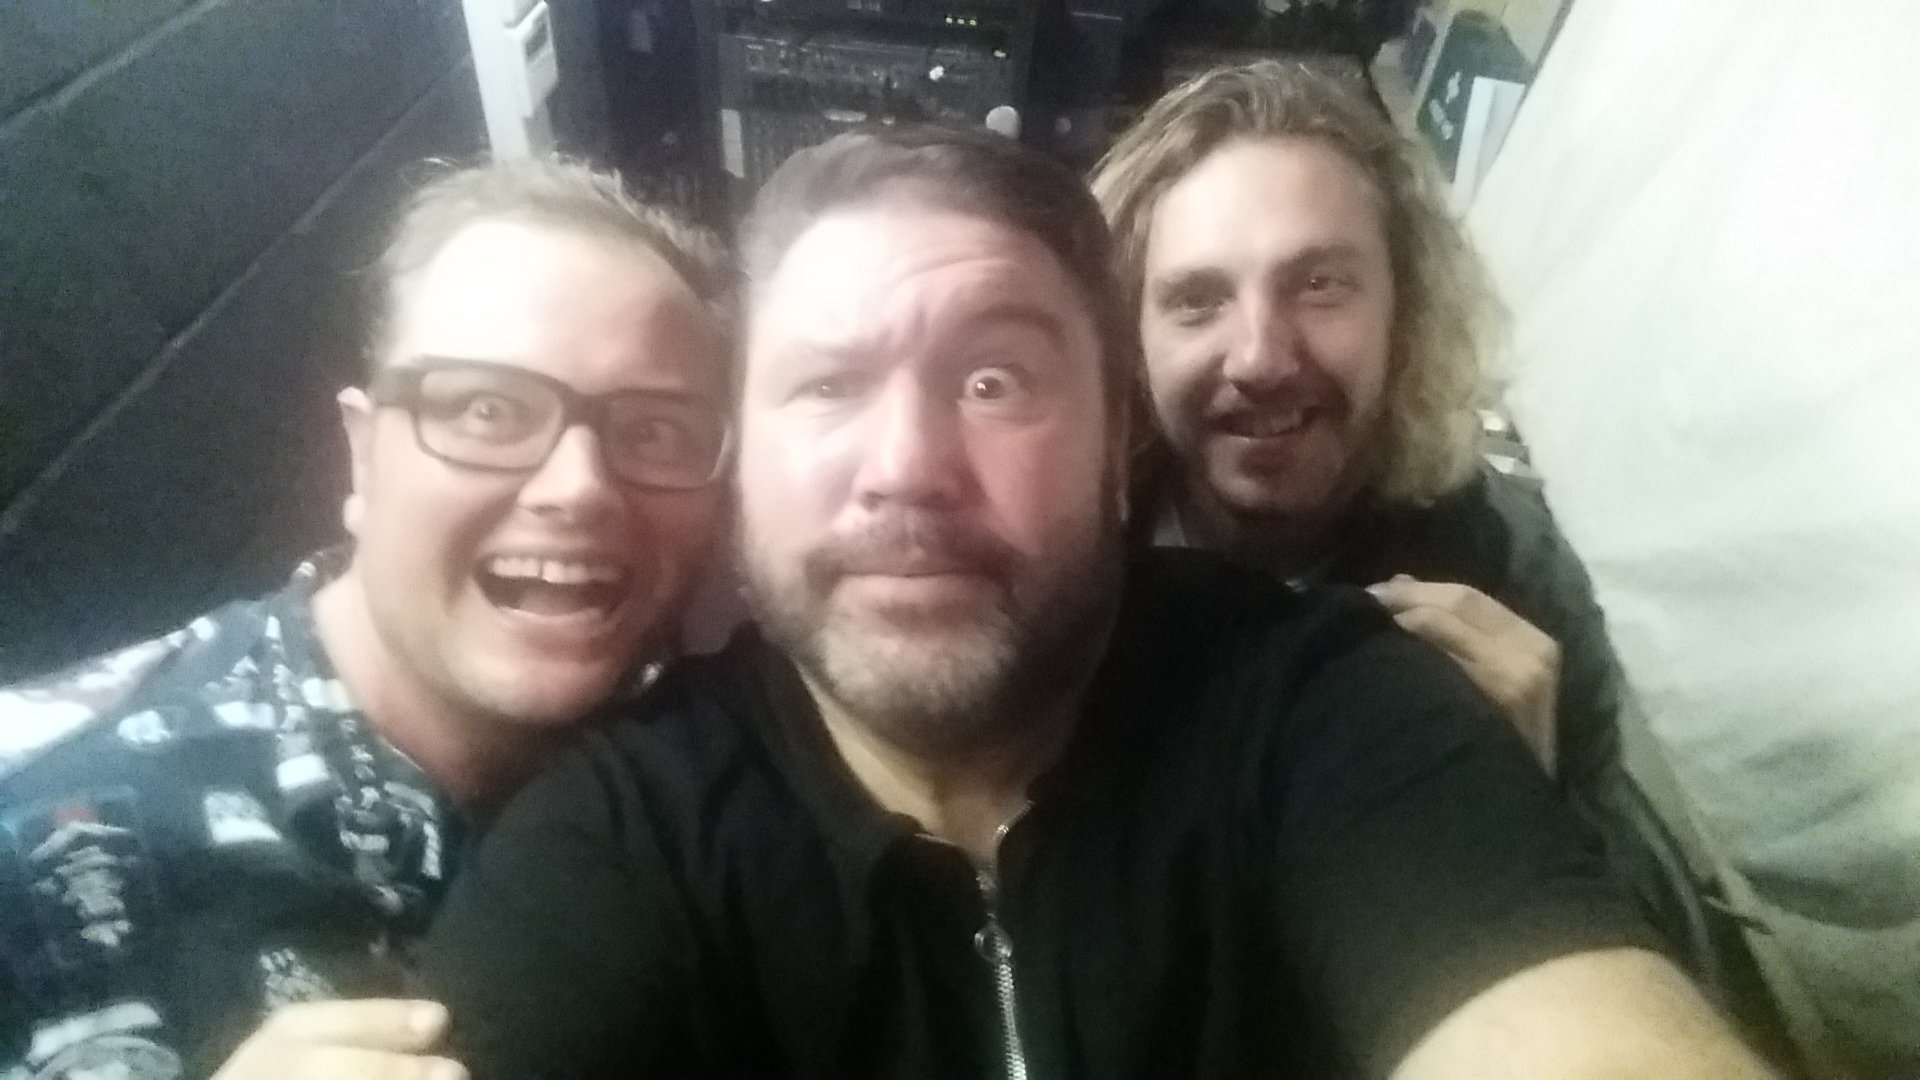 RT @RickyGroverUK: @seannwalsh @AlanCarr thanks for smashing the granny out of it last night! https://t.co/DwqEhjcdNy